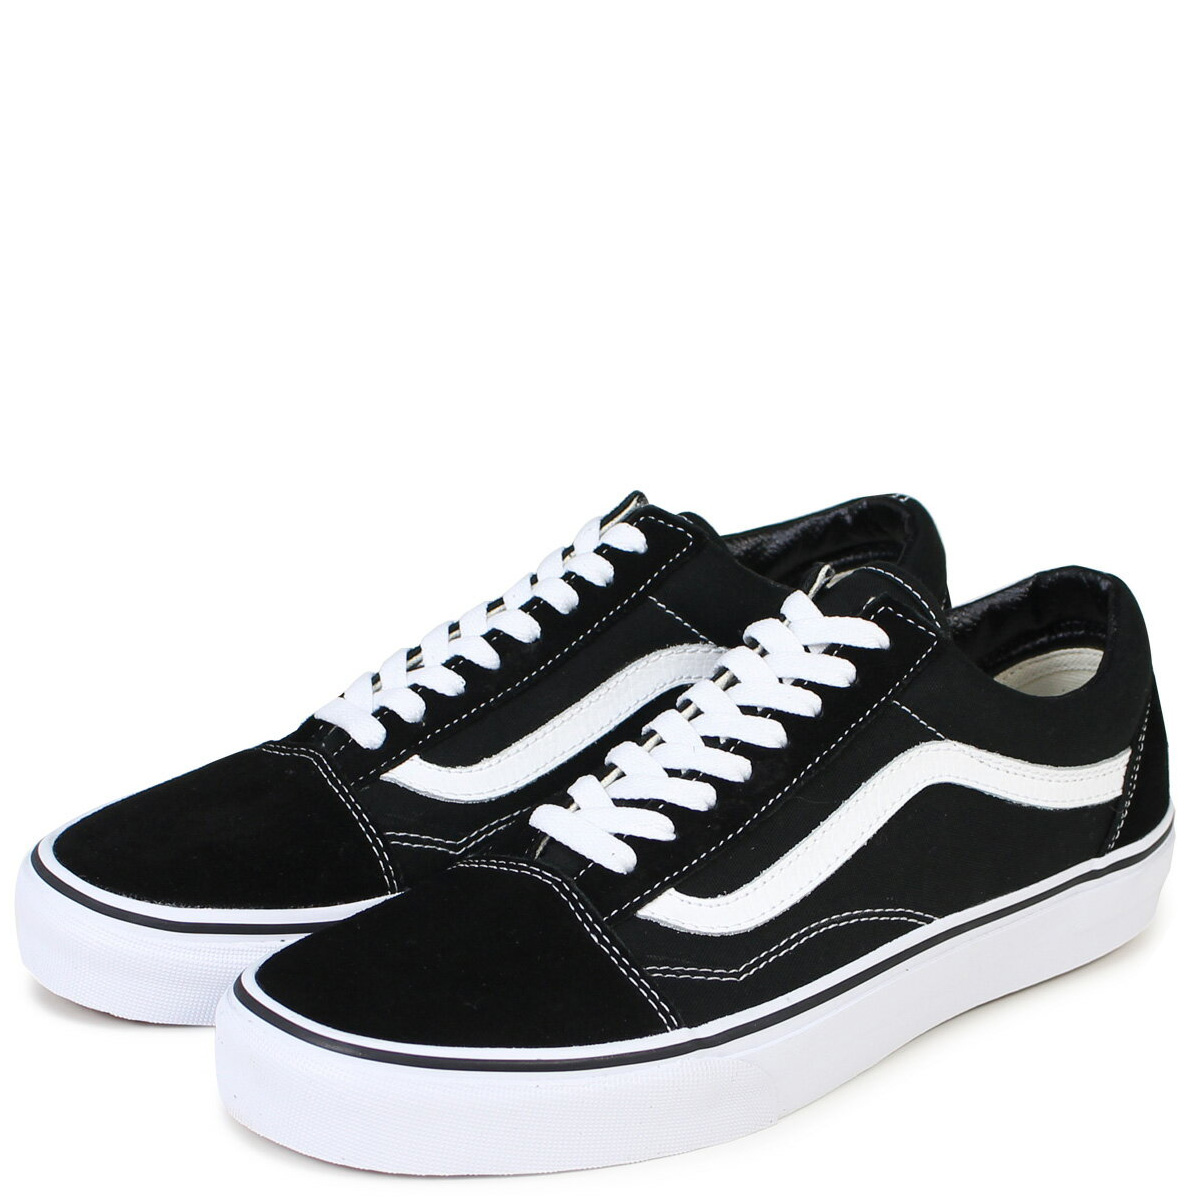 wholesale sneakers for cheap best service VANS OLD SKOOL vans old school sneakers men gap Dis station wagons black  black VN000D3HY28 [the 10/10 additional arrival]